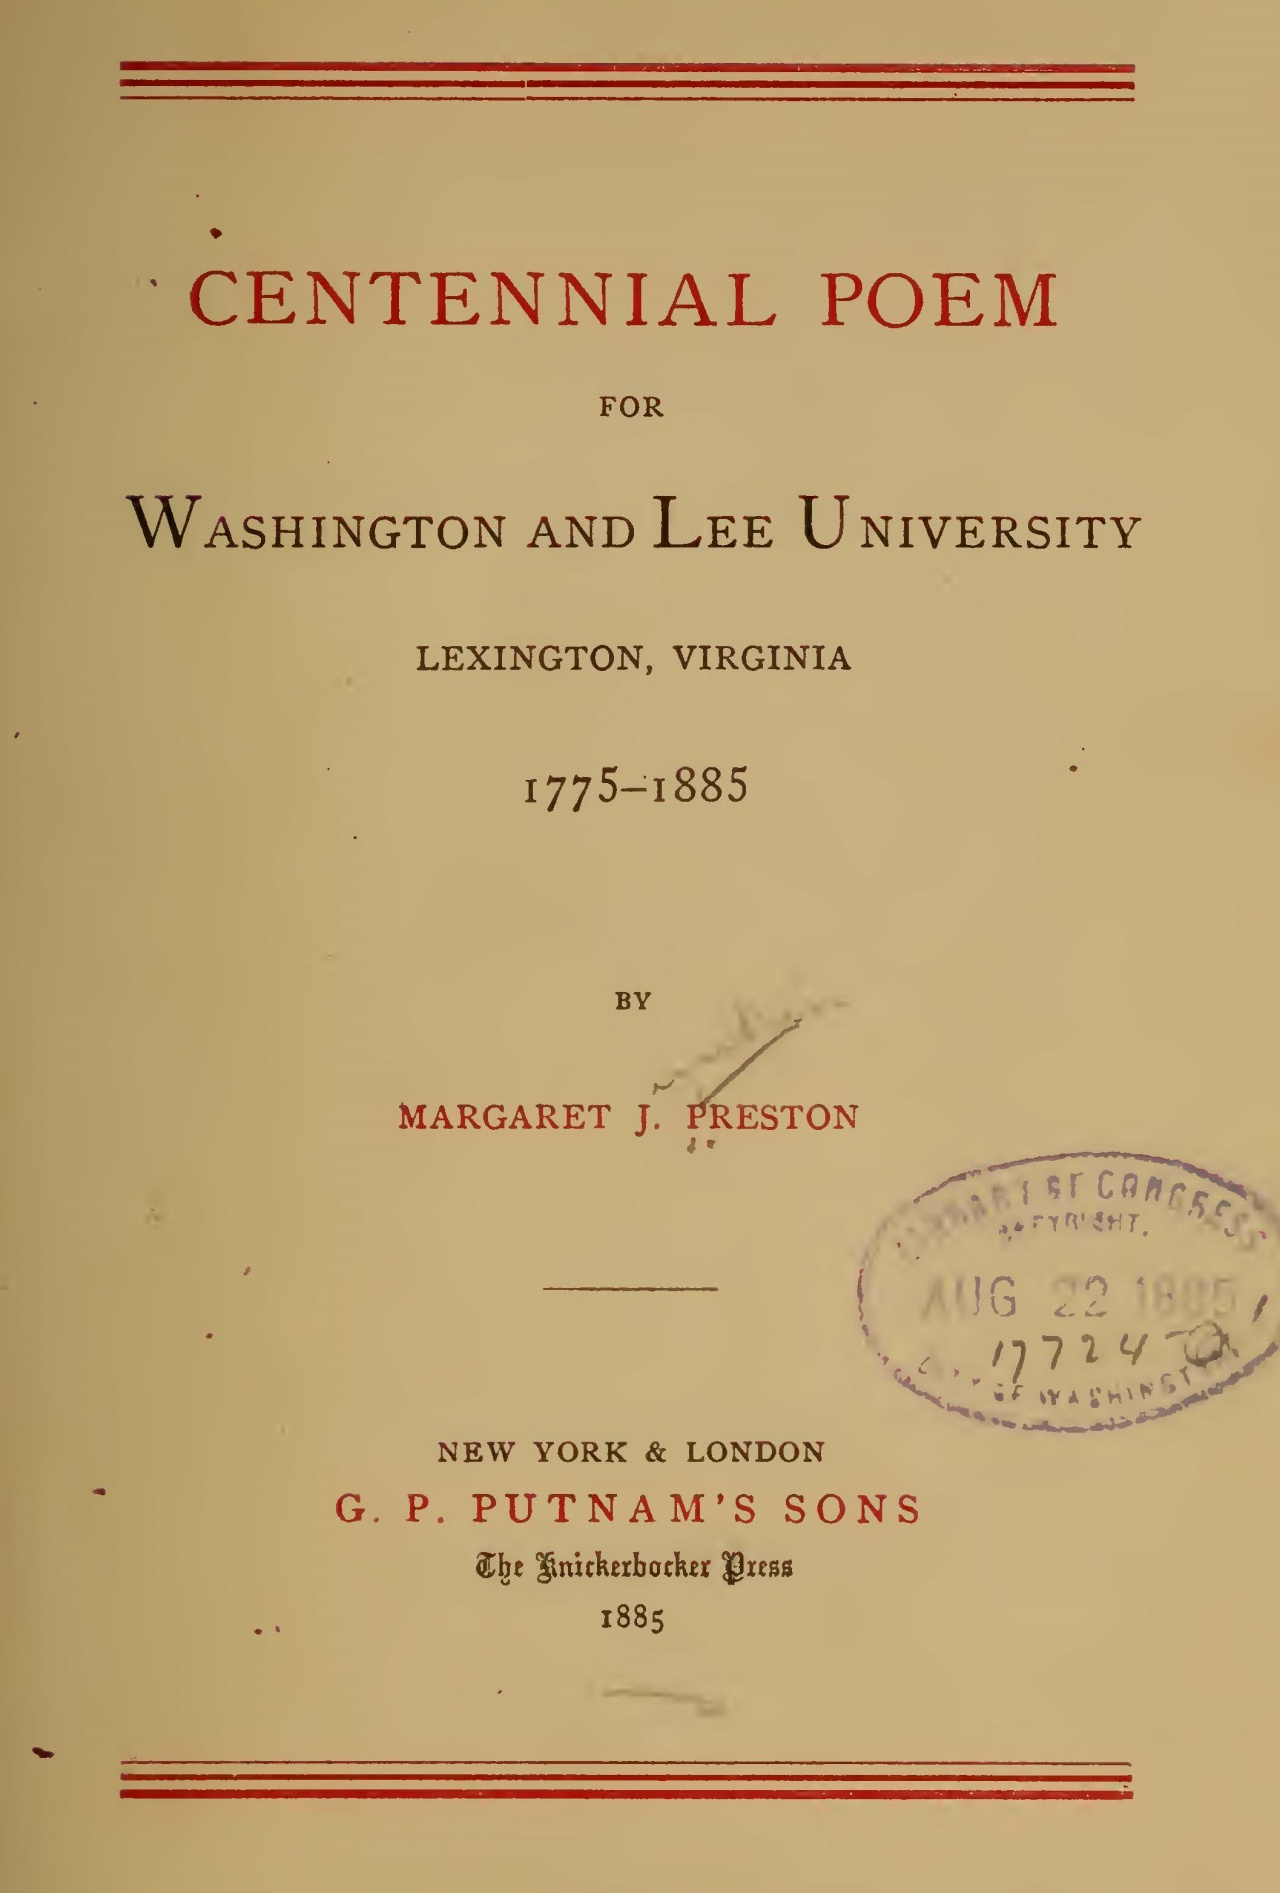 Preston, Margaret Junkin, Centennial Poem for Washington and Lee University Title Page.jpg